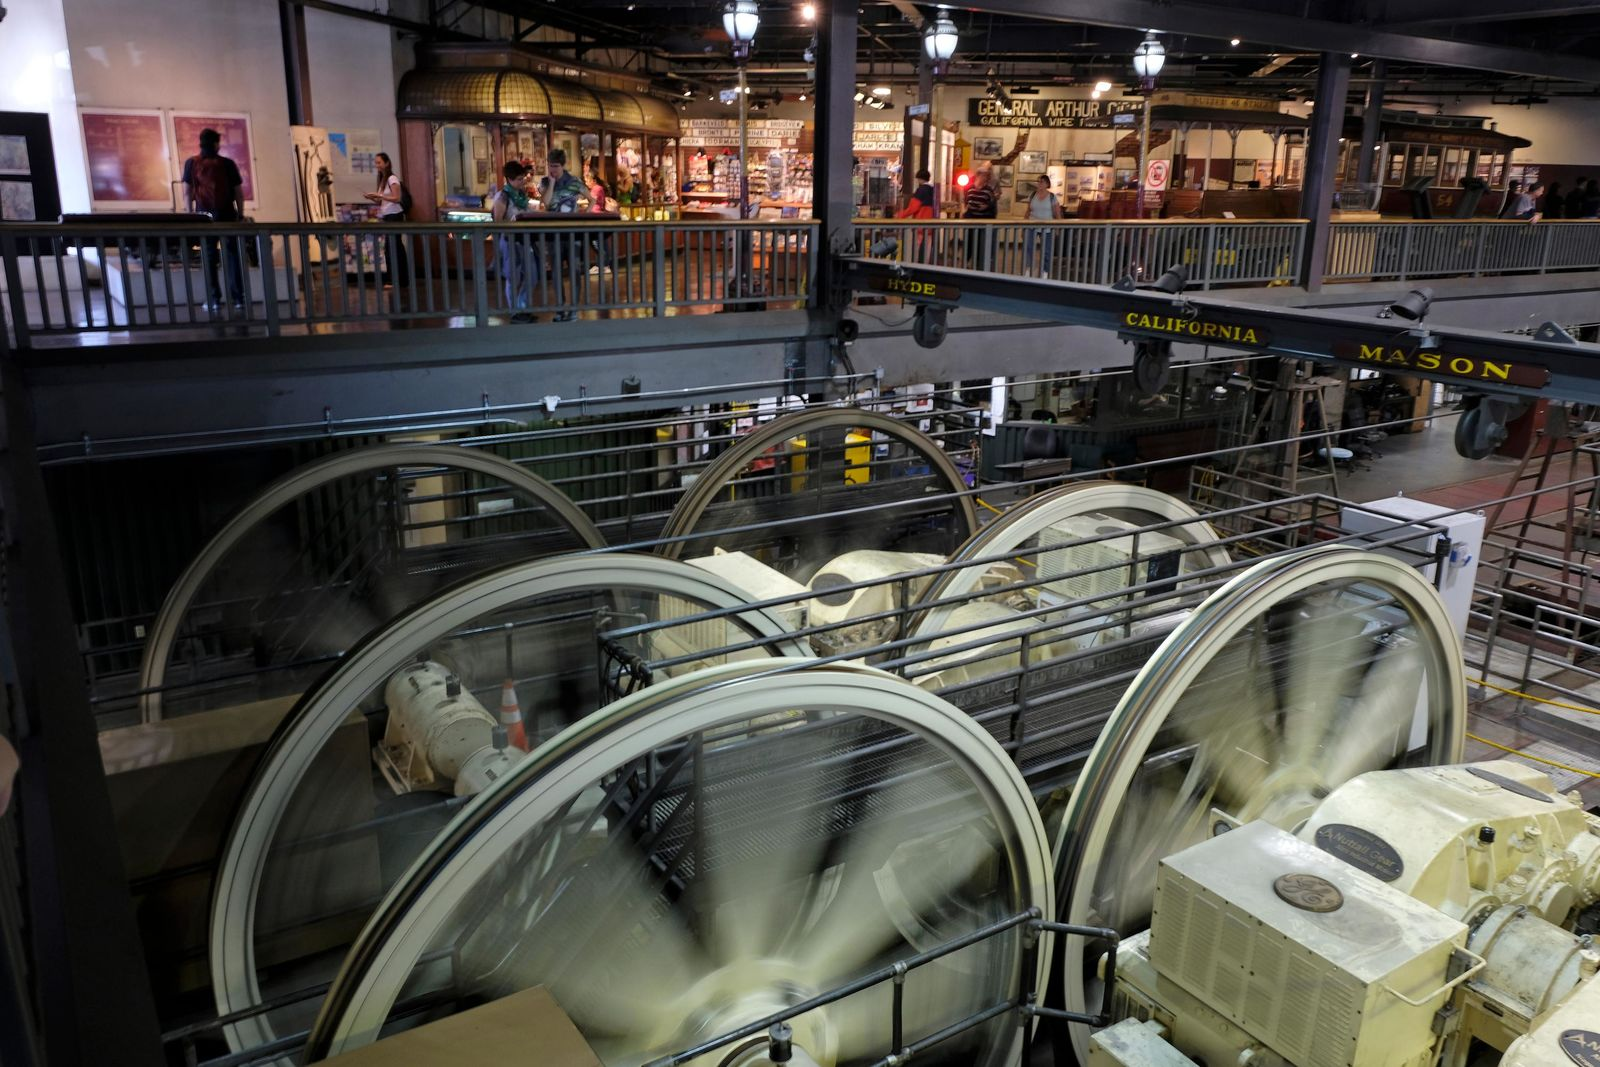 Sheaves turn by gearboxes inside the cable car powerhouse Wednesday, Sept. 11, 2019, in San Francisco. (AP Photo/Eric Risberg)